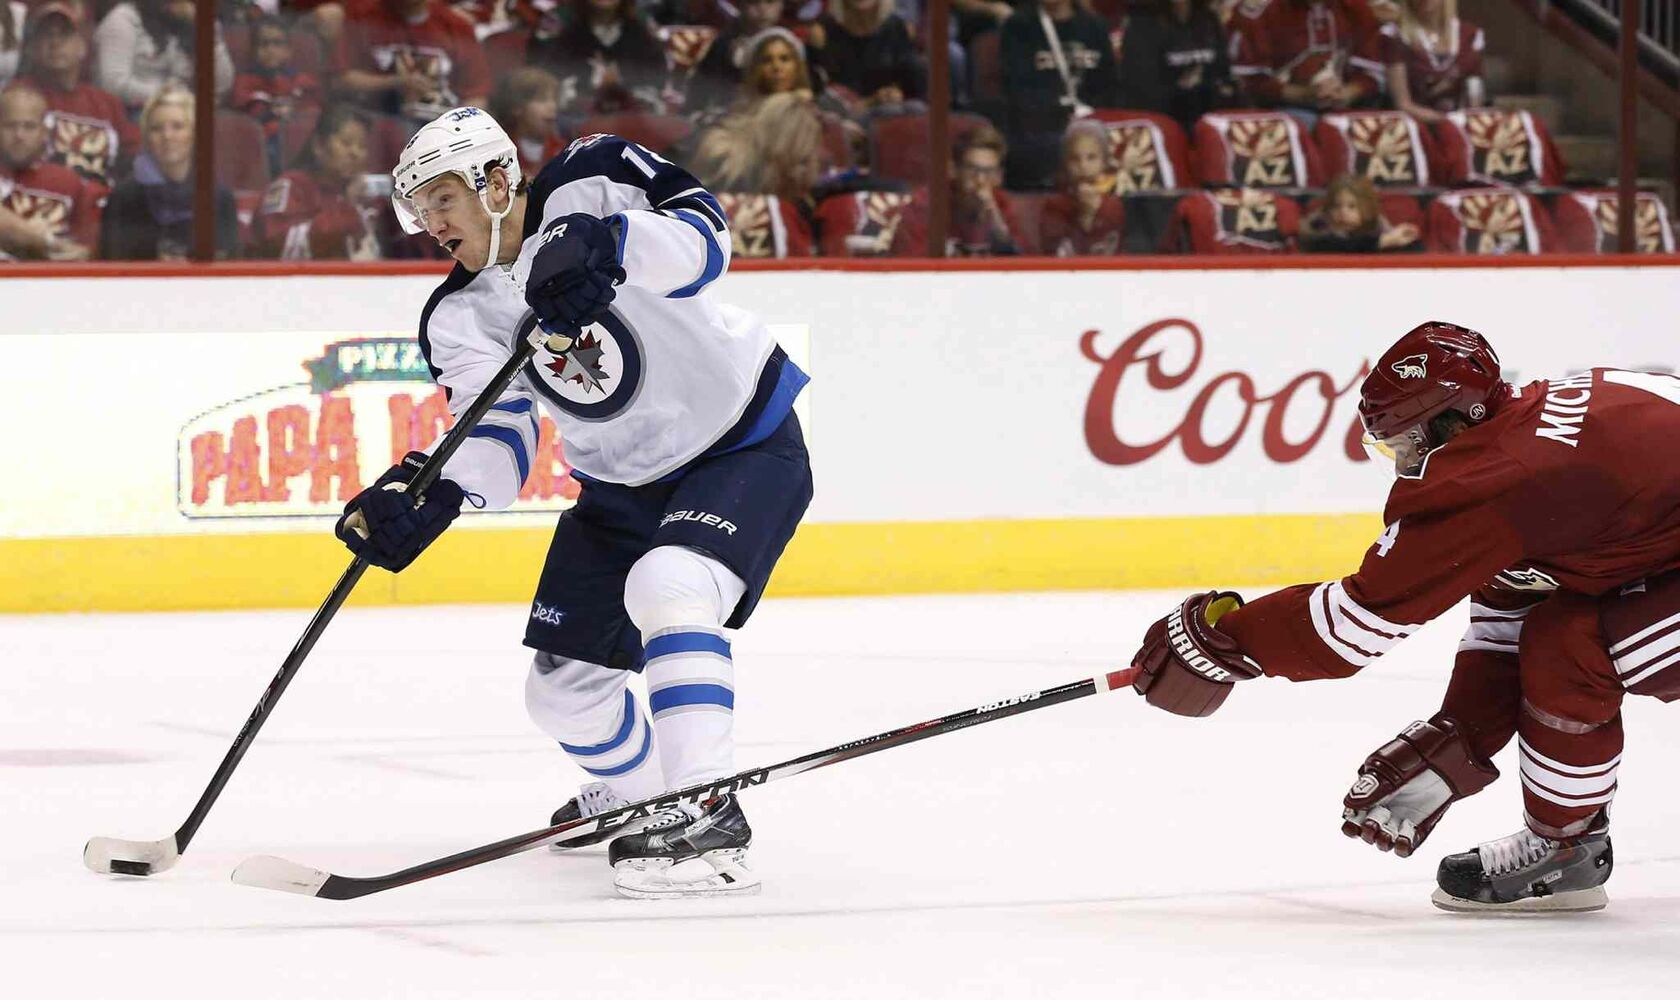 Winnipeg Jets' Bryan Little (18) shoots the puck as he scores a goal while Arizona Coyotes' Zbynek Michalek (4), of the Czech Republic, arrives late to defend during the first period of an NHL hockey game Thursday, Oct. 9, 2014. (Ross D. Franklin / The Associated Press)